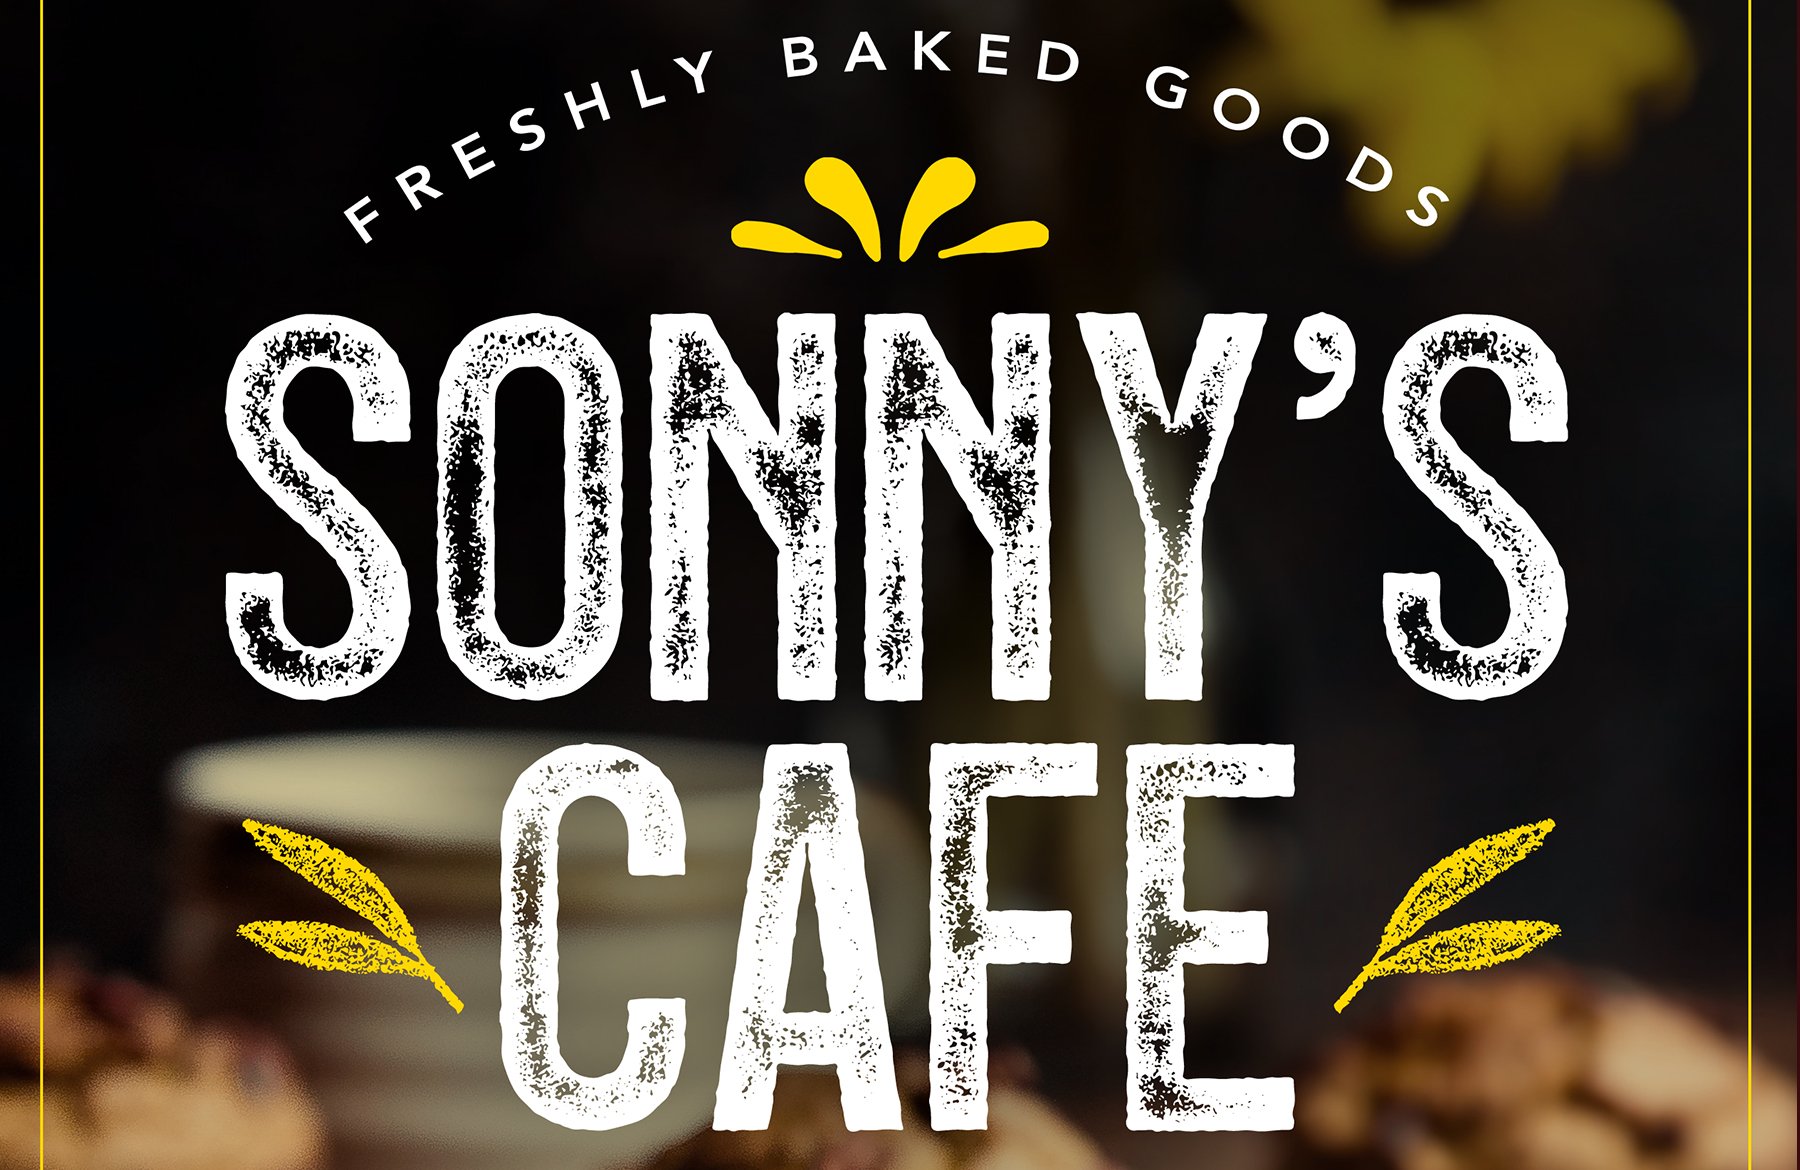 Tutorial to Create A Freshly Baked Cafe Ad In Photoshop